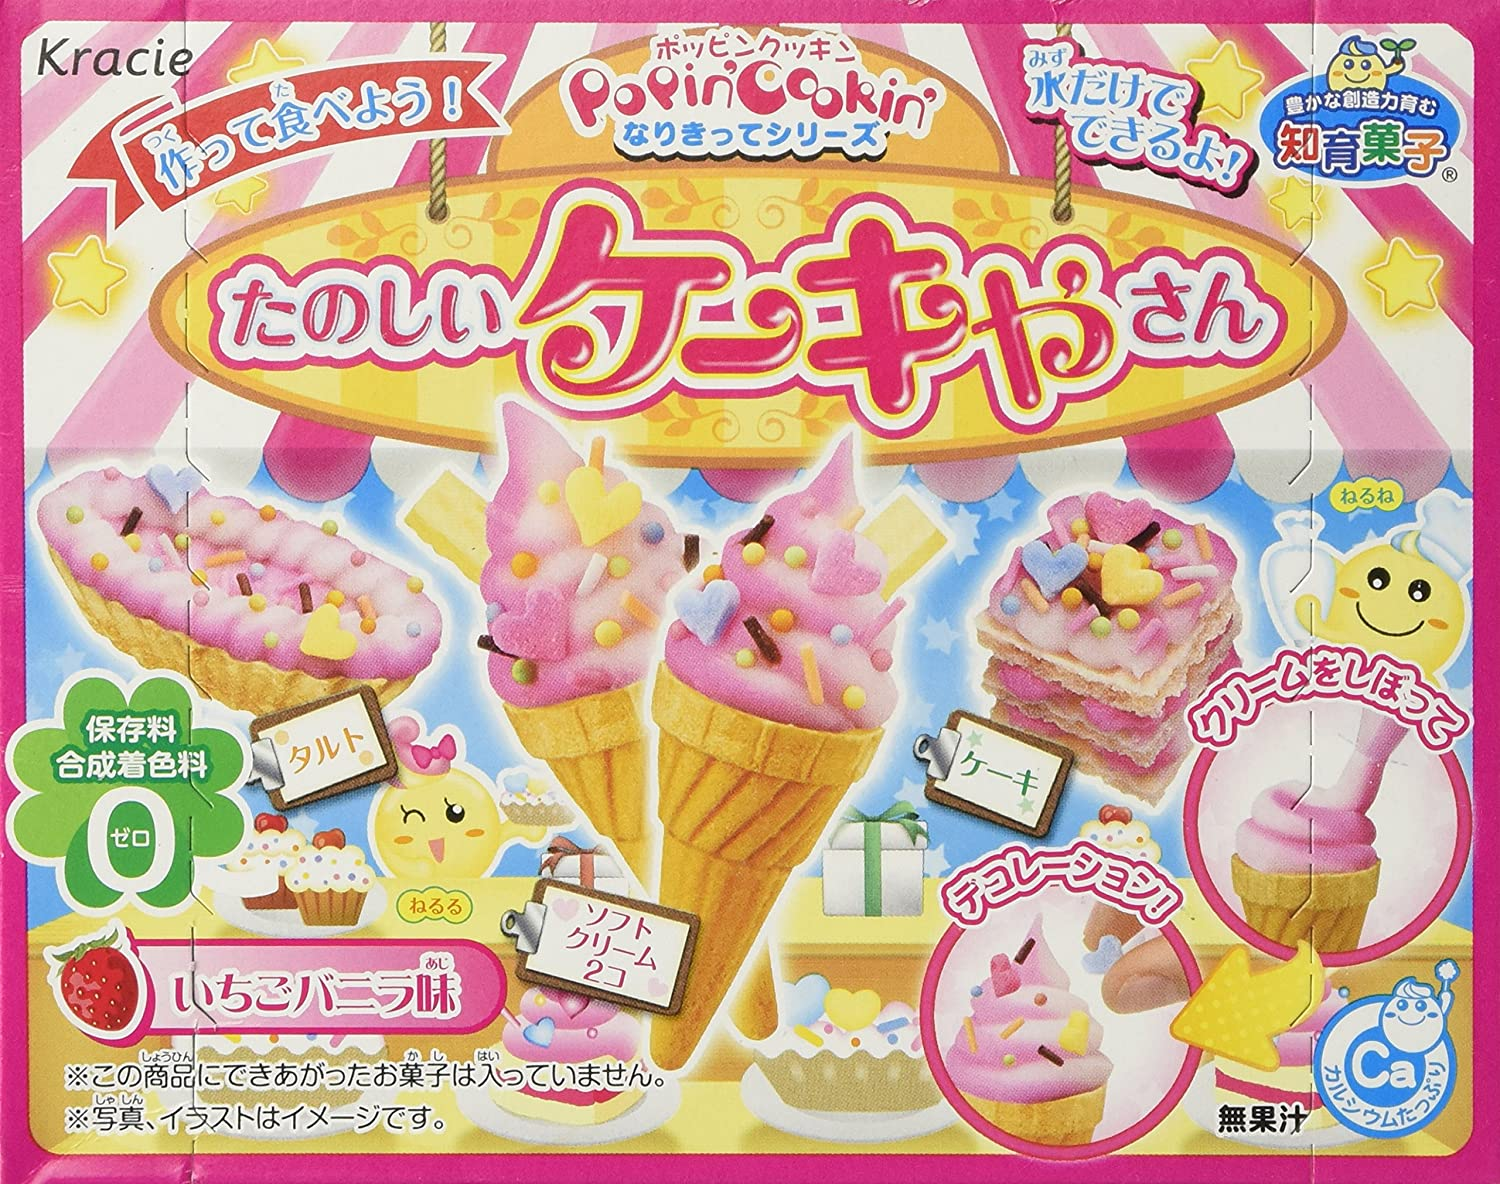 Popin cookin amazon - Amazon Com Kracie Popin Cookin Diy Cake Shop Ice Cream Cone Frosting Desserts Cake Mix Grocery Gourmet Food